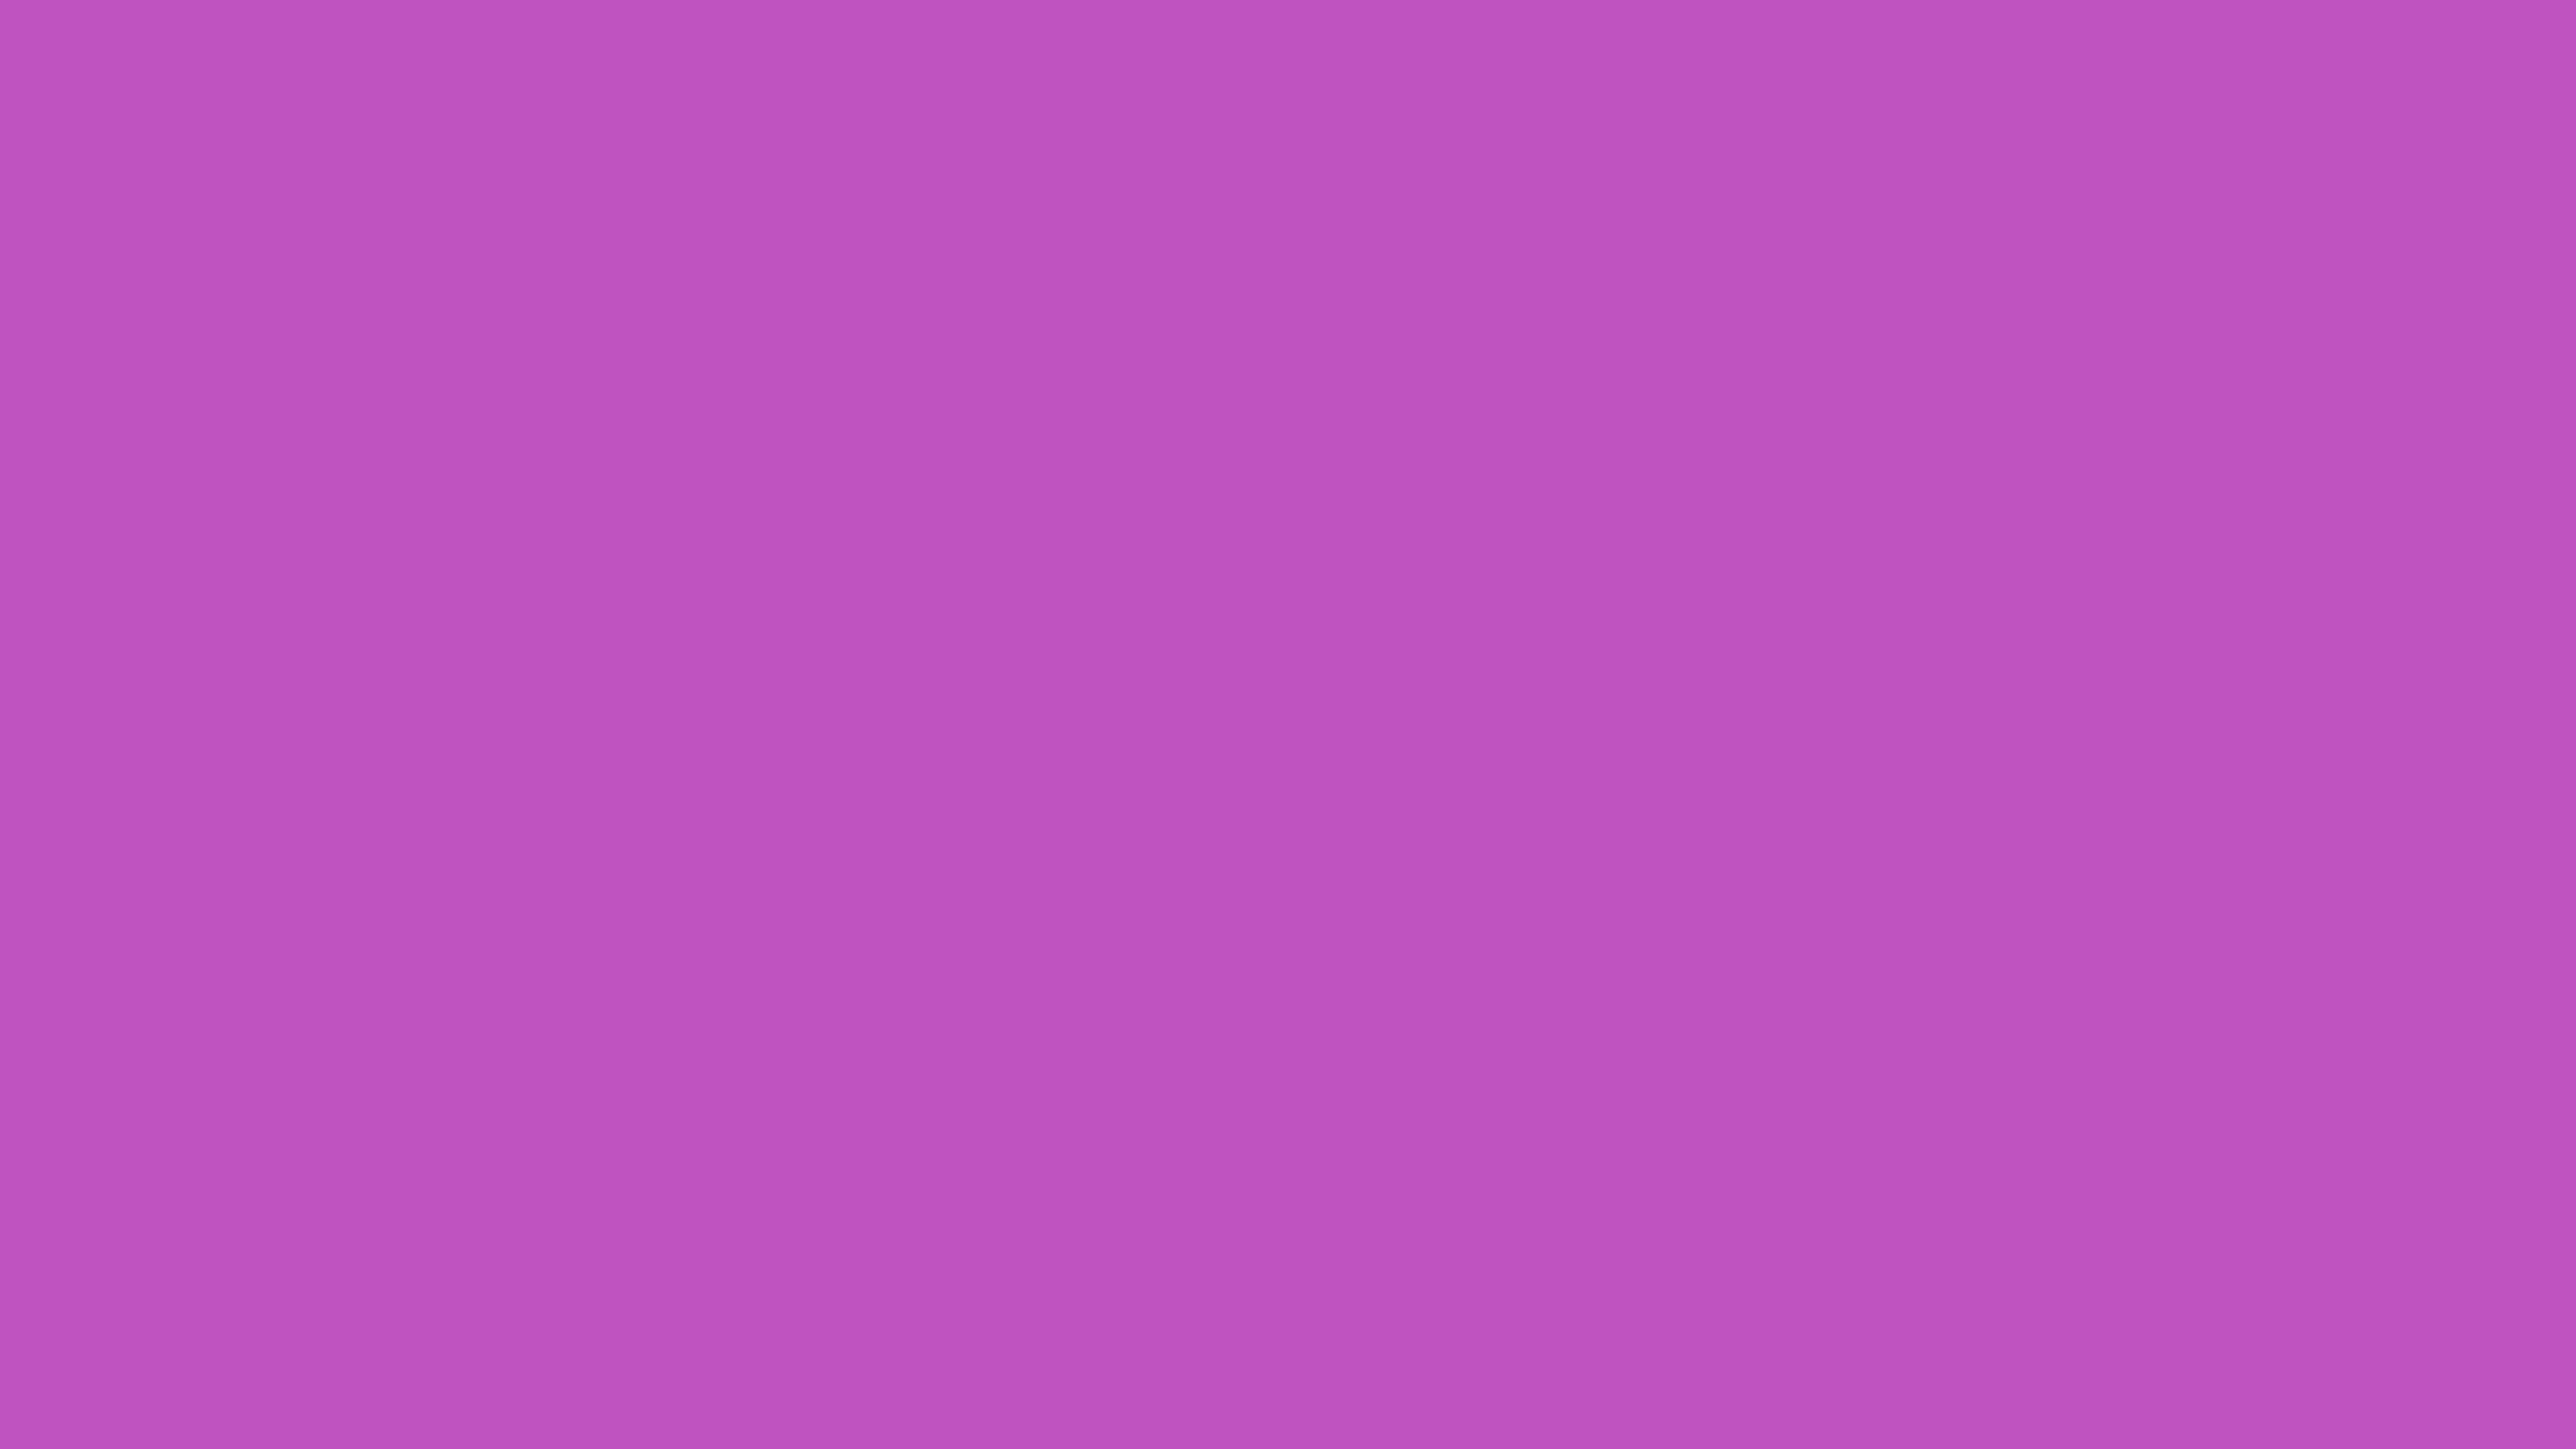 5120x2880 Fuchsia Crayola Solid Color Background